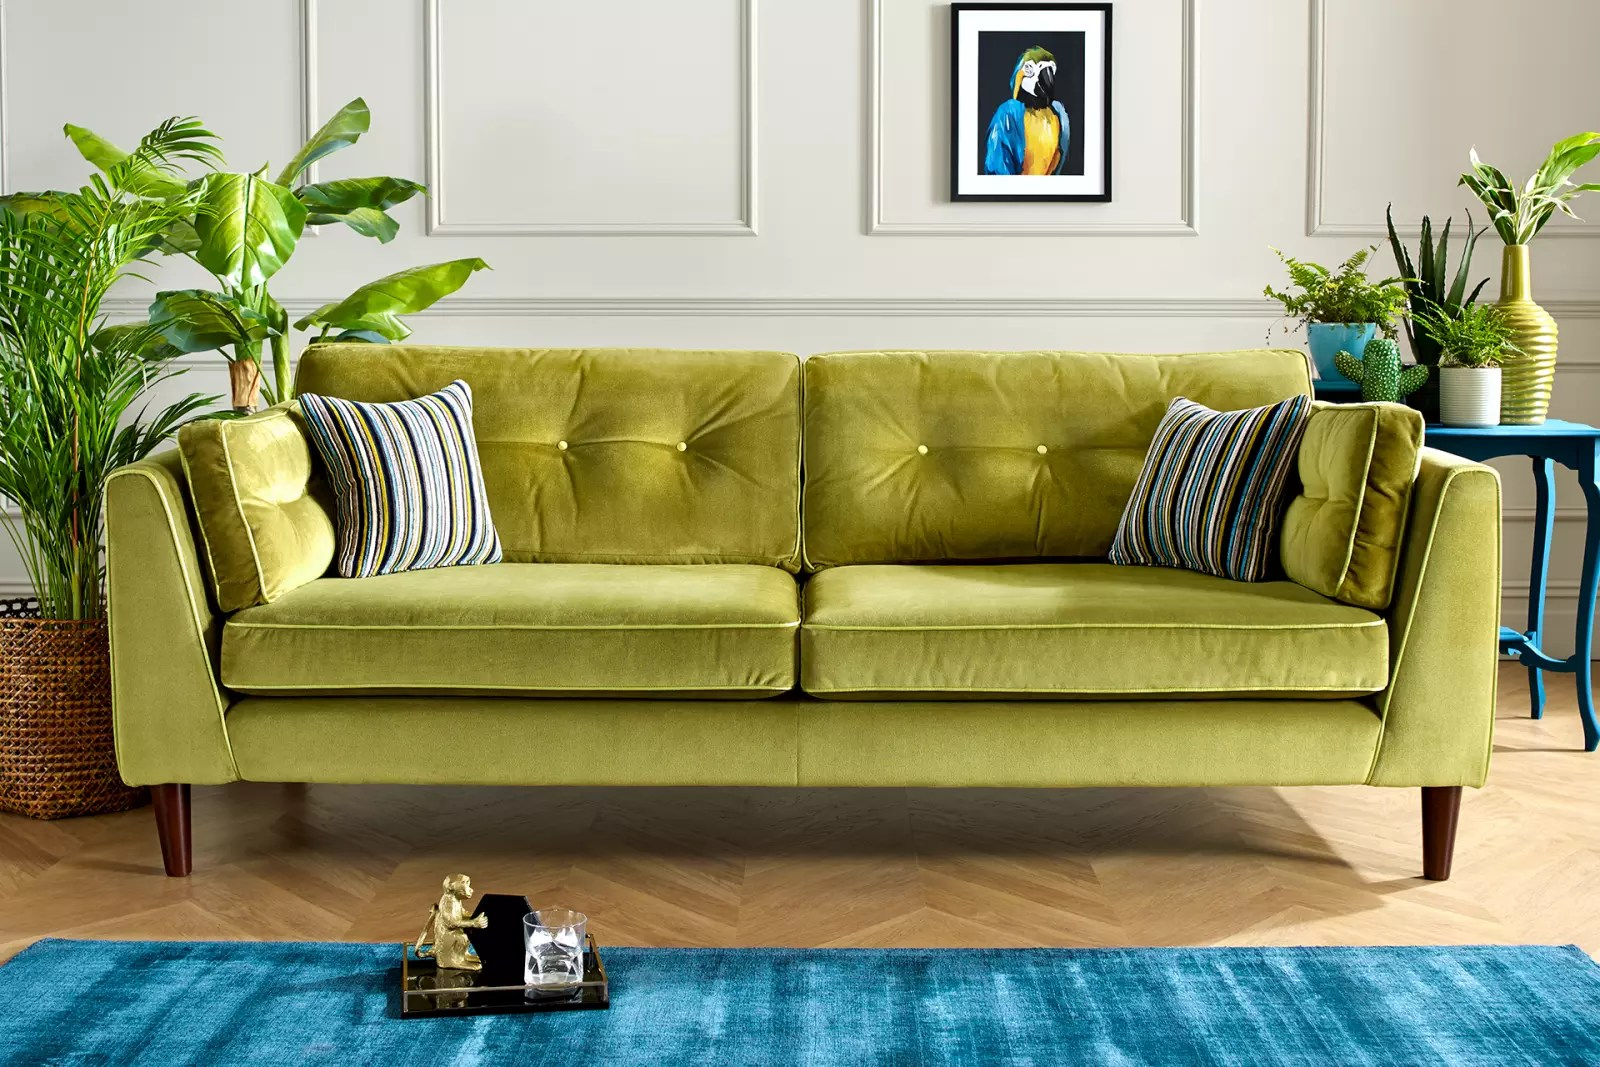 Sofology Yellow Sofa Outlet Sofology